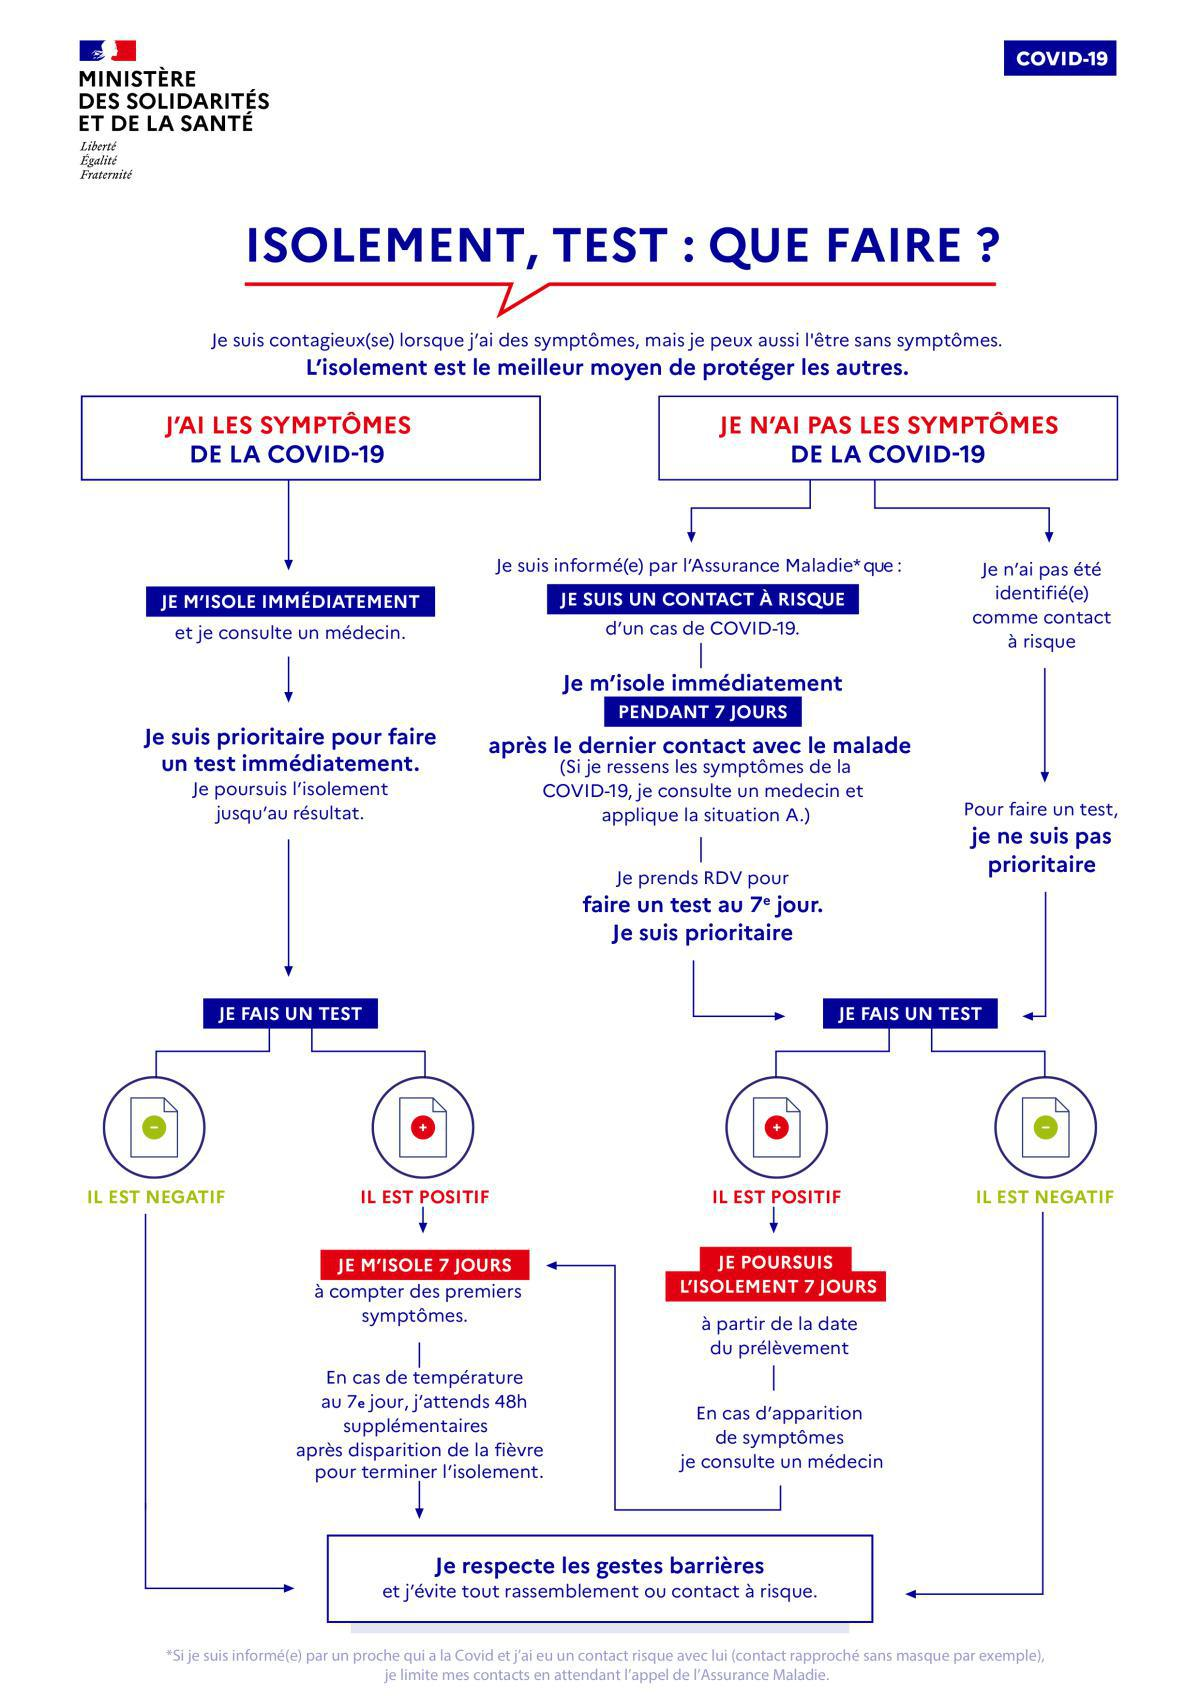 Test, isolement ... : Que faire ?